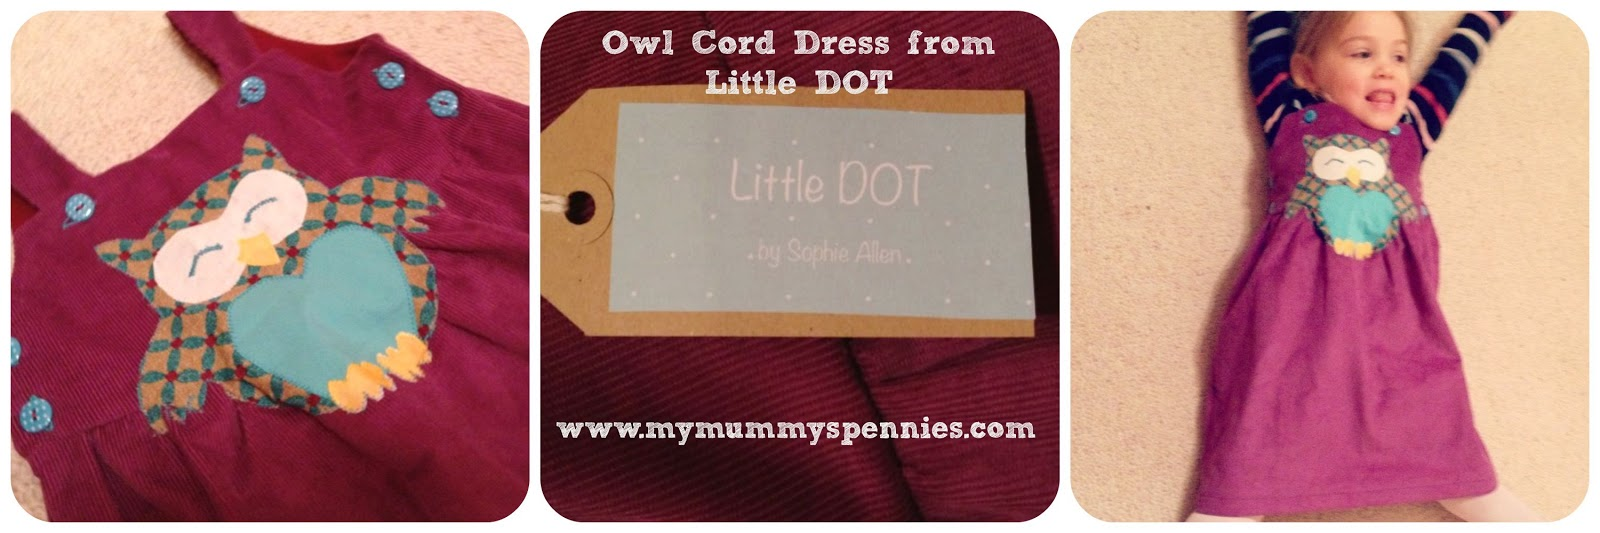 Owl dress from Little Dot www.mymummyspennies.com